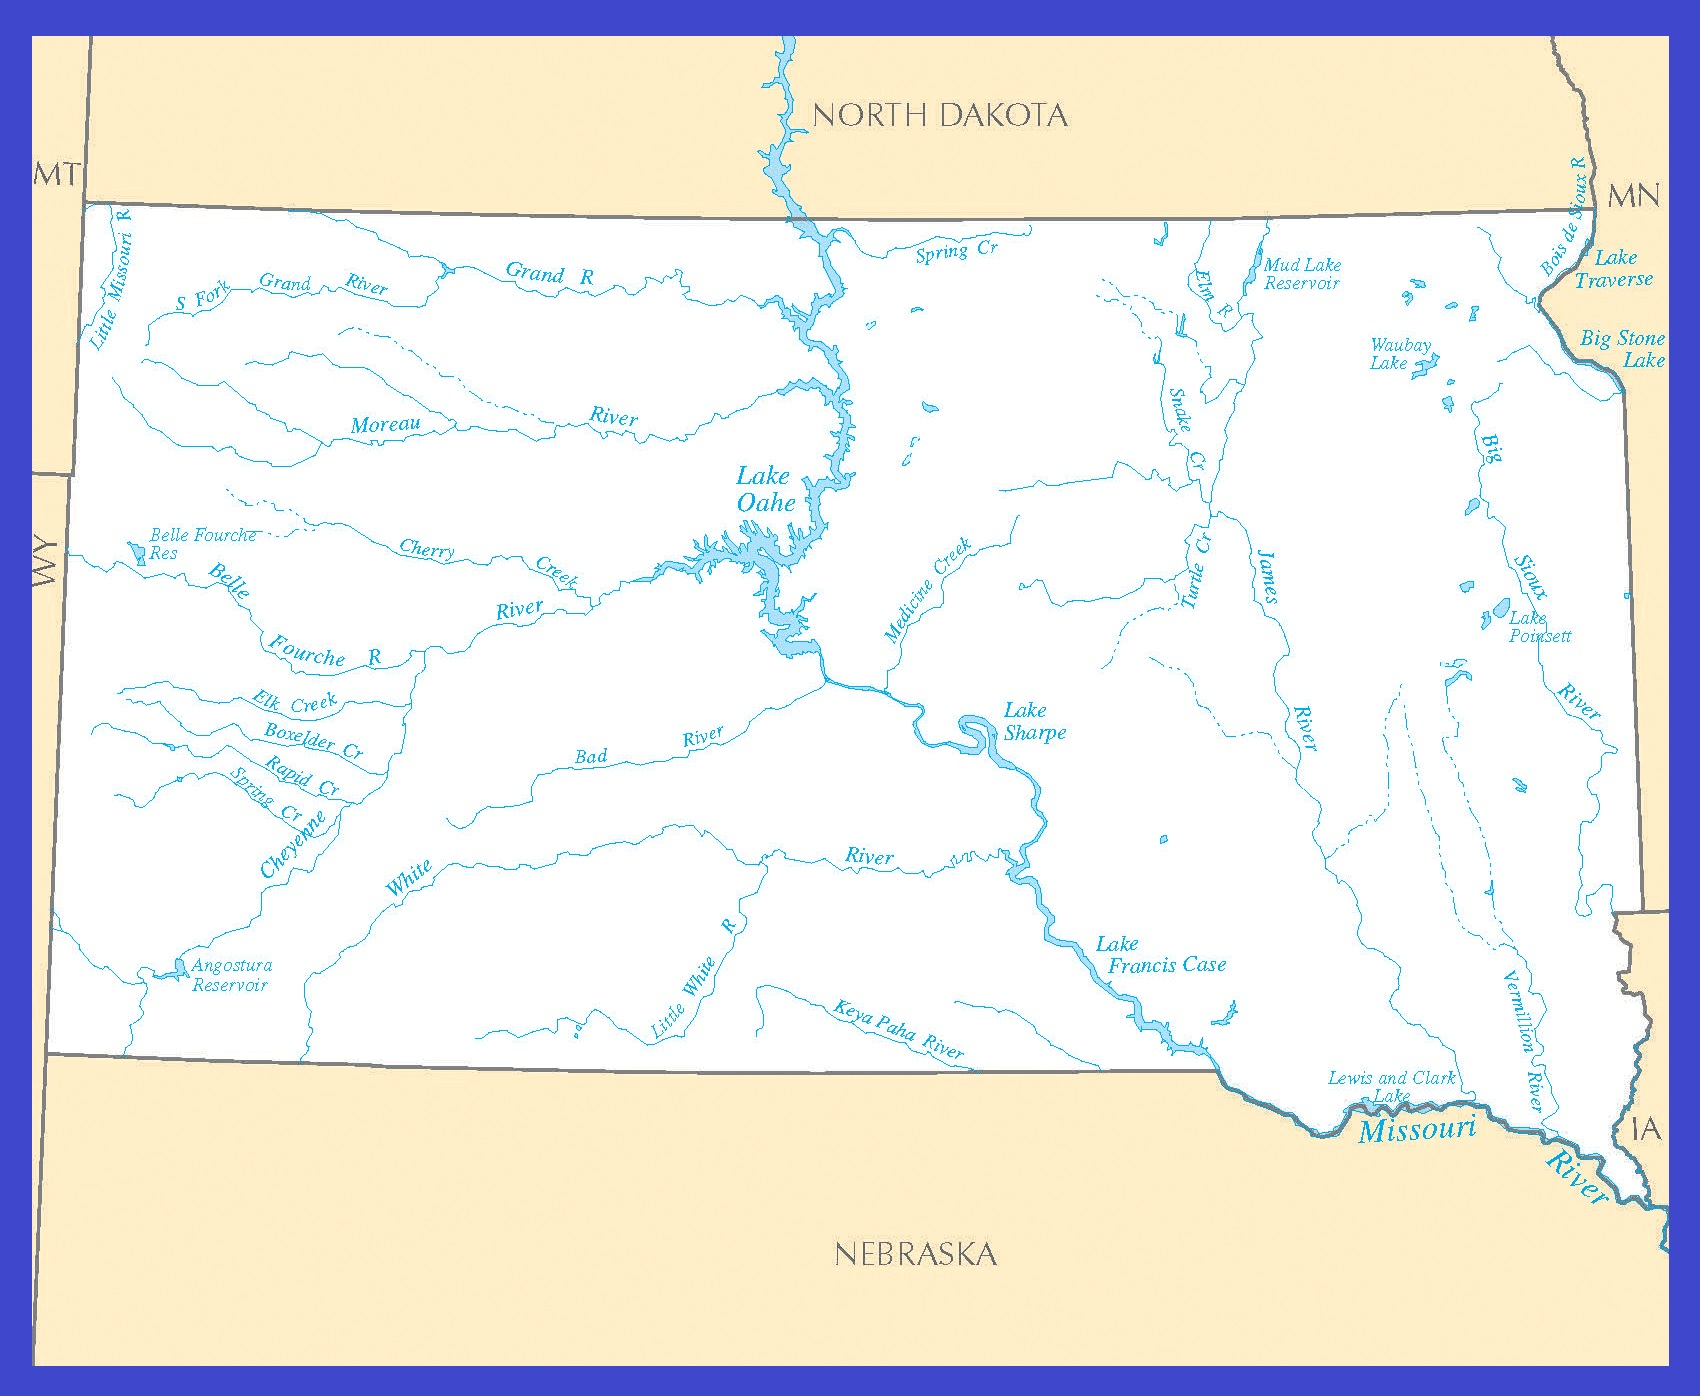 South Dakota Rivers Map | Large Printable High Resolution and Standard Map